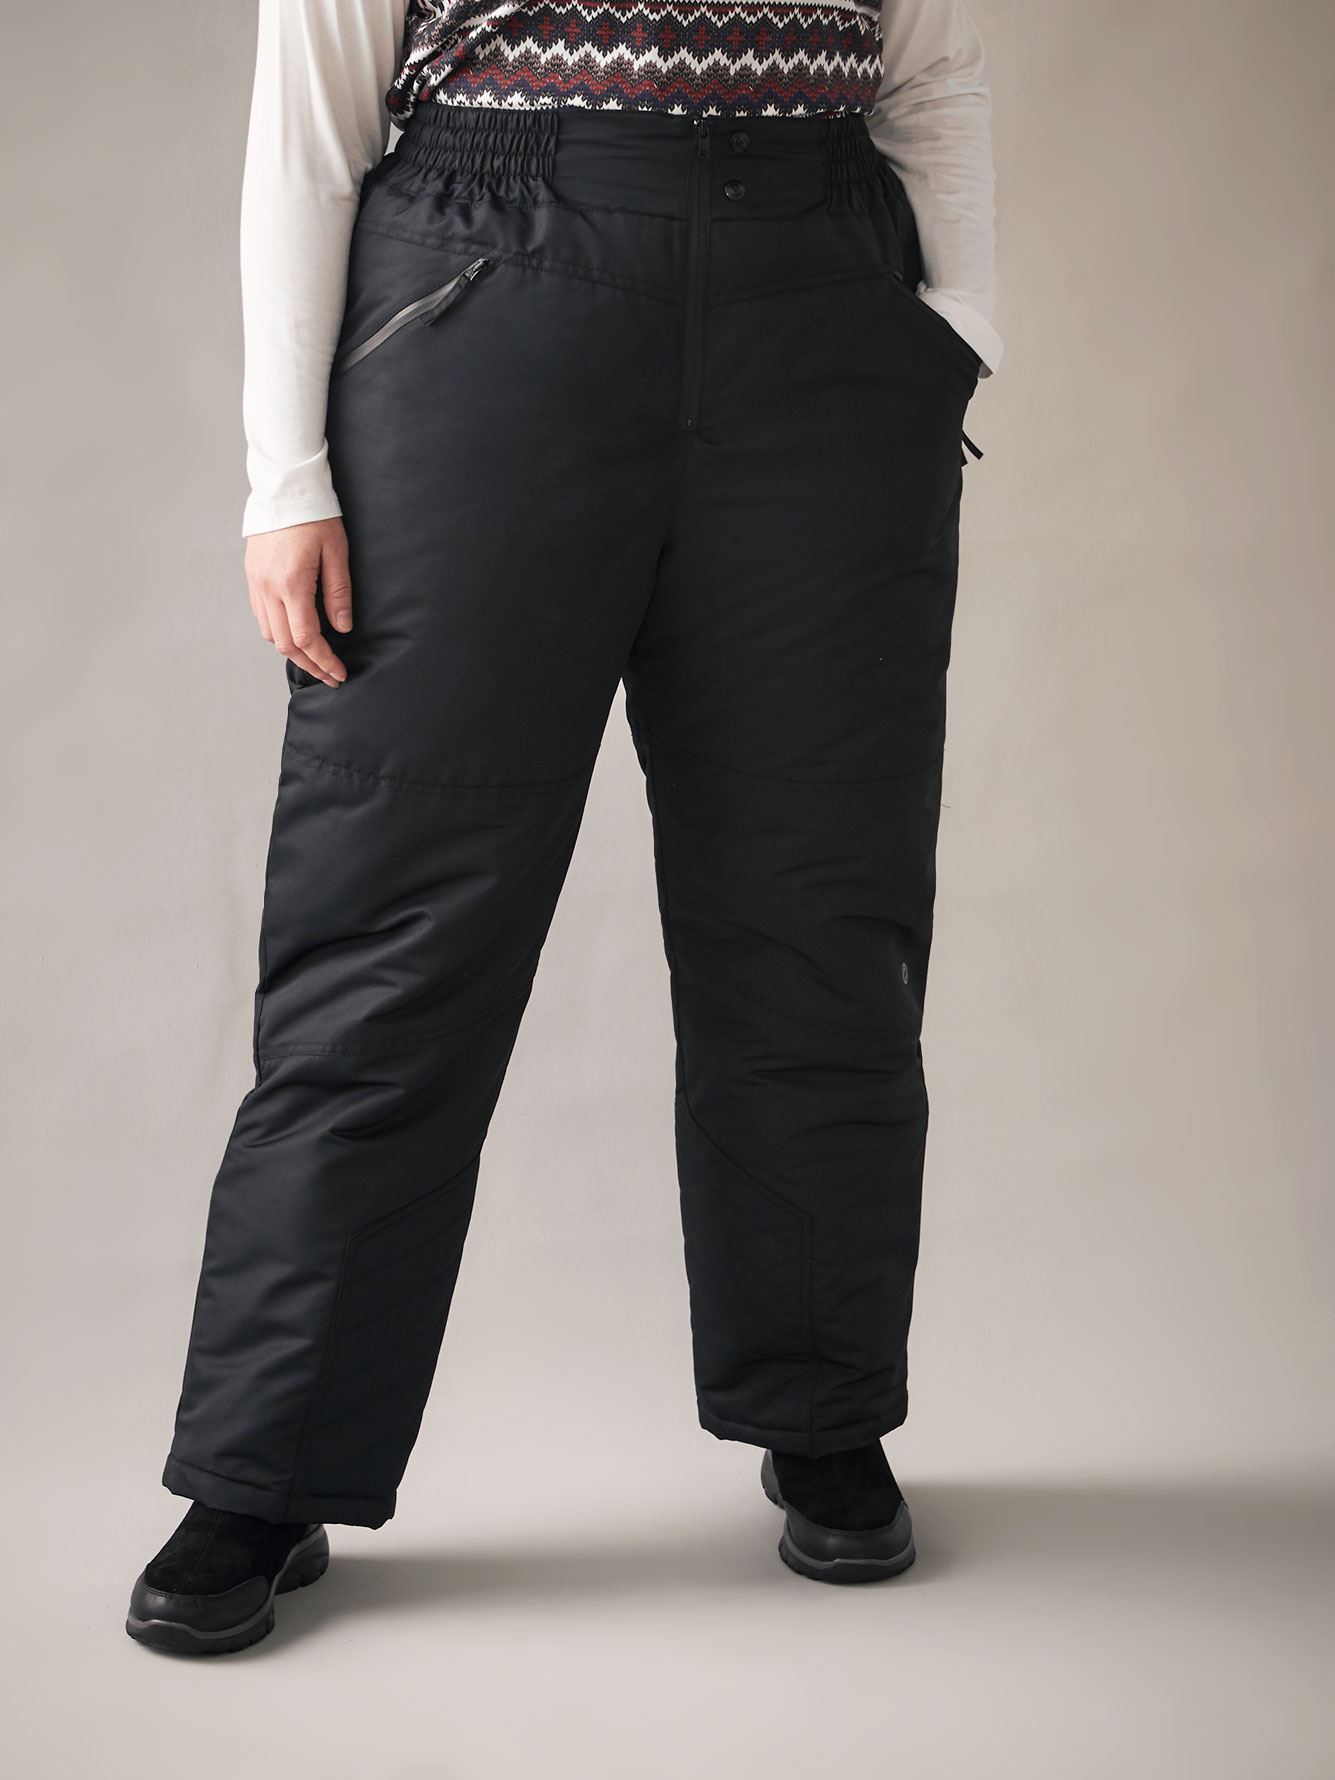 Petite, Black Ski Pants - ActiveZone